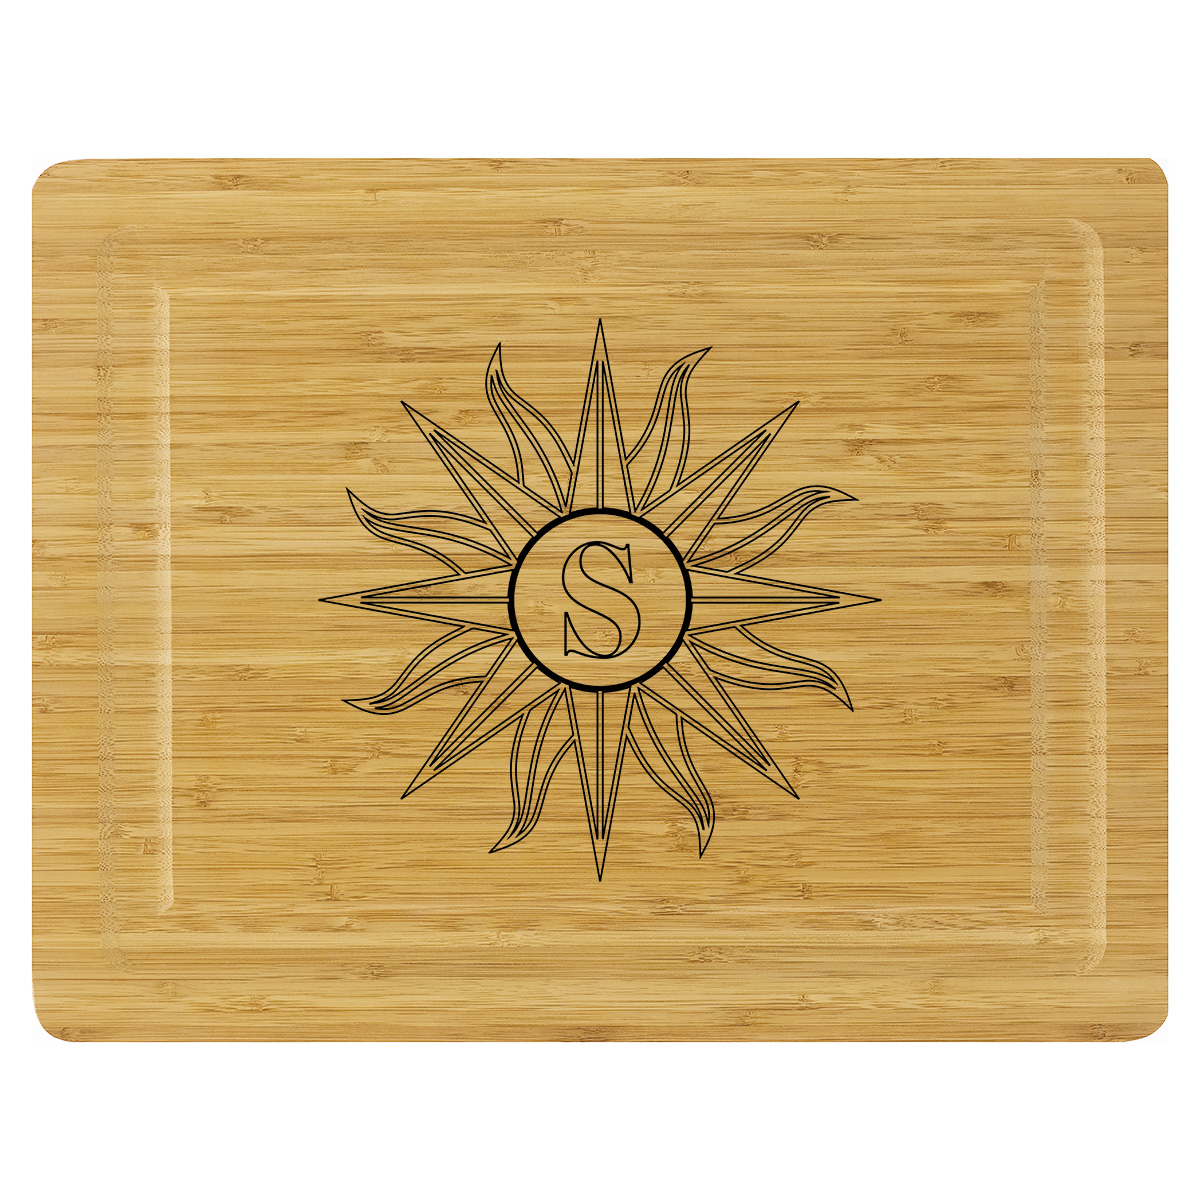 Cutting Board - Aztec Sun Initial - LIMITED LETTERS AVAILABLE